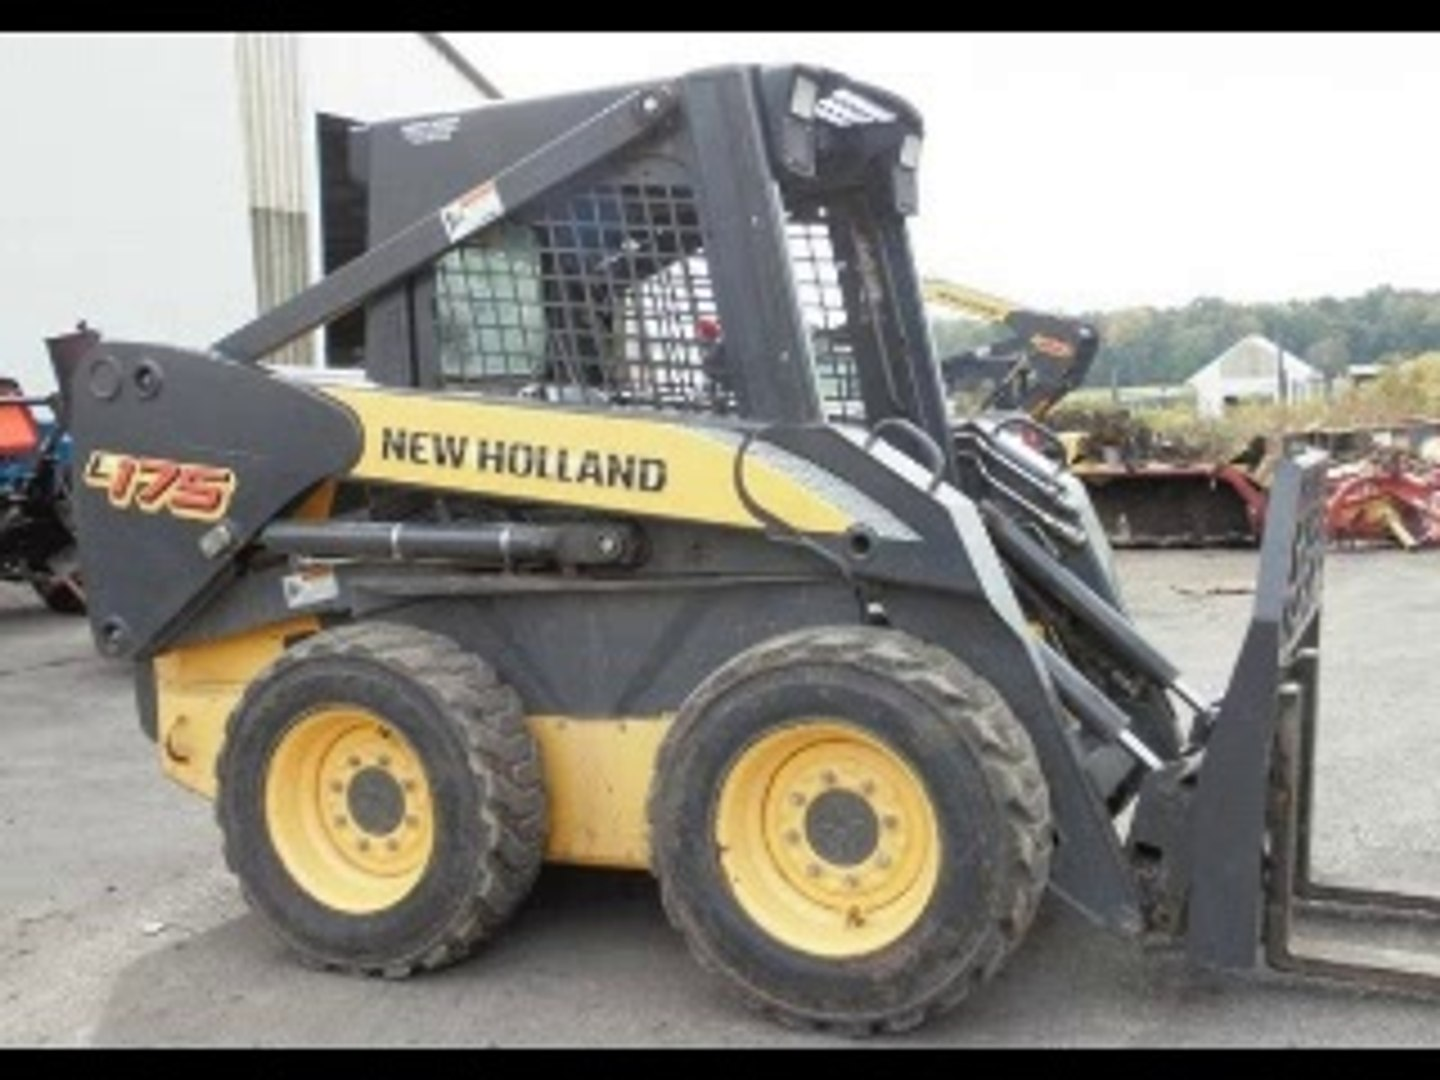 New Holland L175 C175 Skid Steer (Compact Track Loader) Service Parts  Catalogue Manual